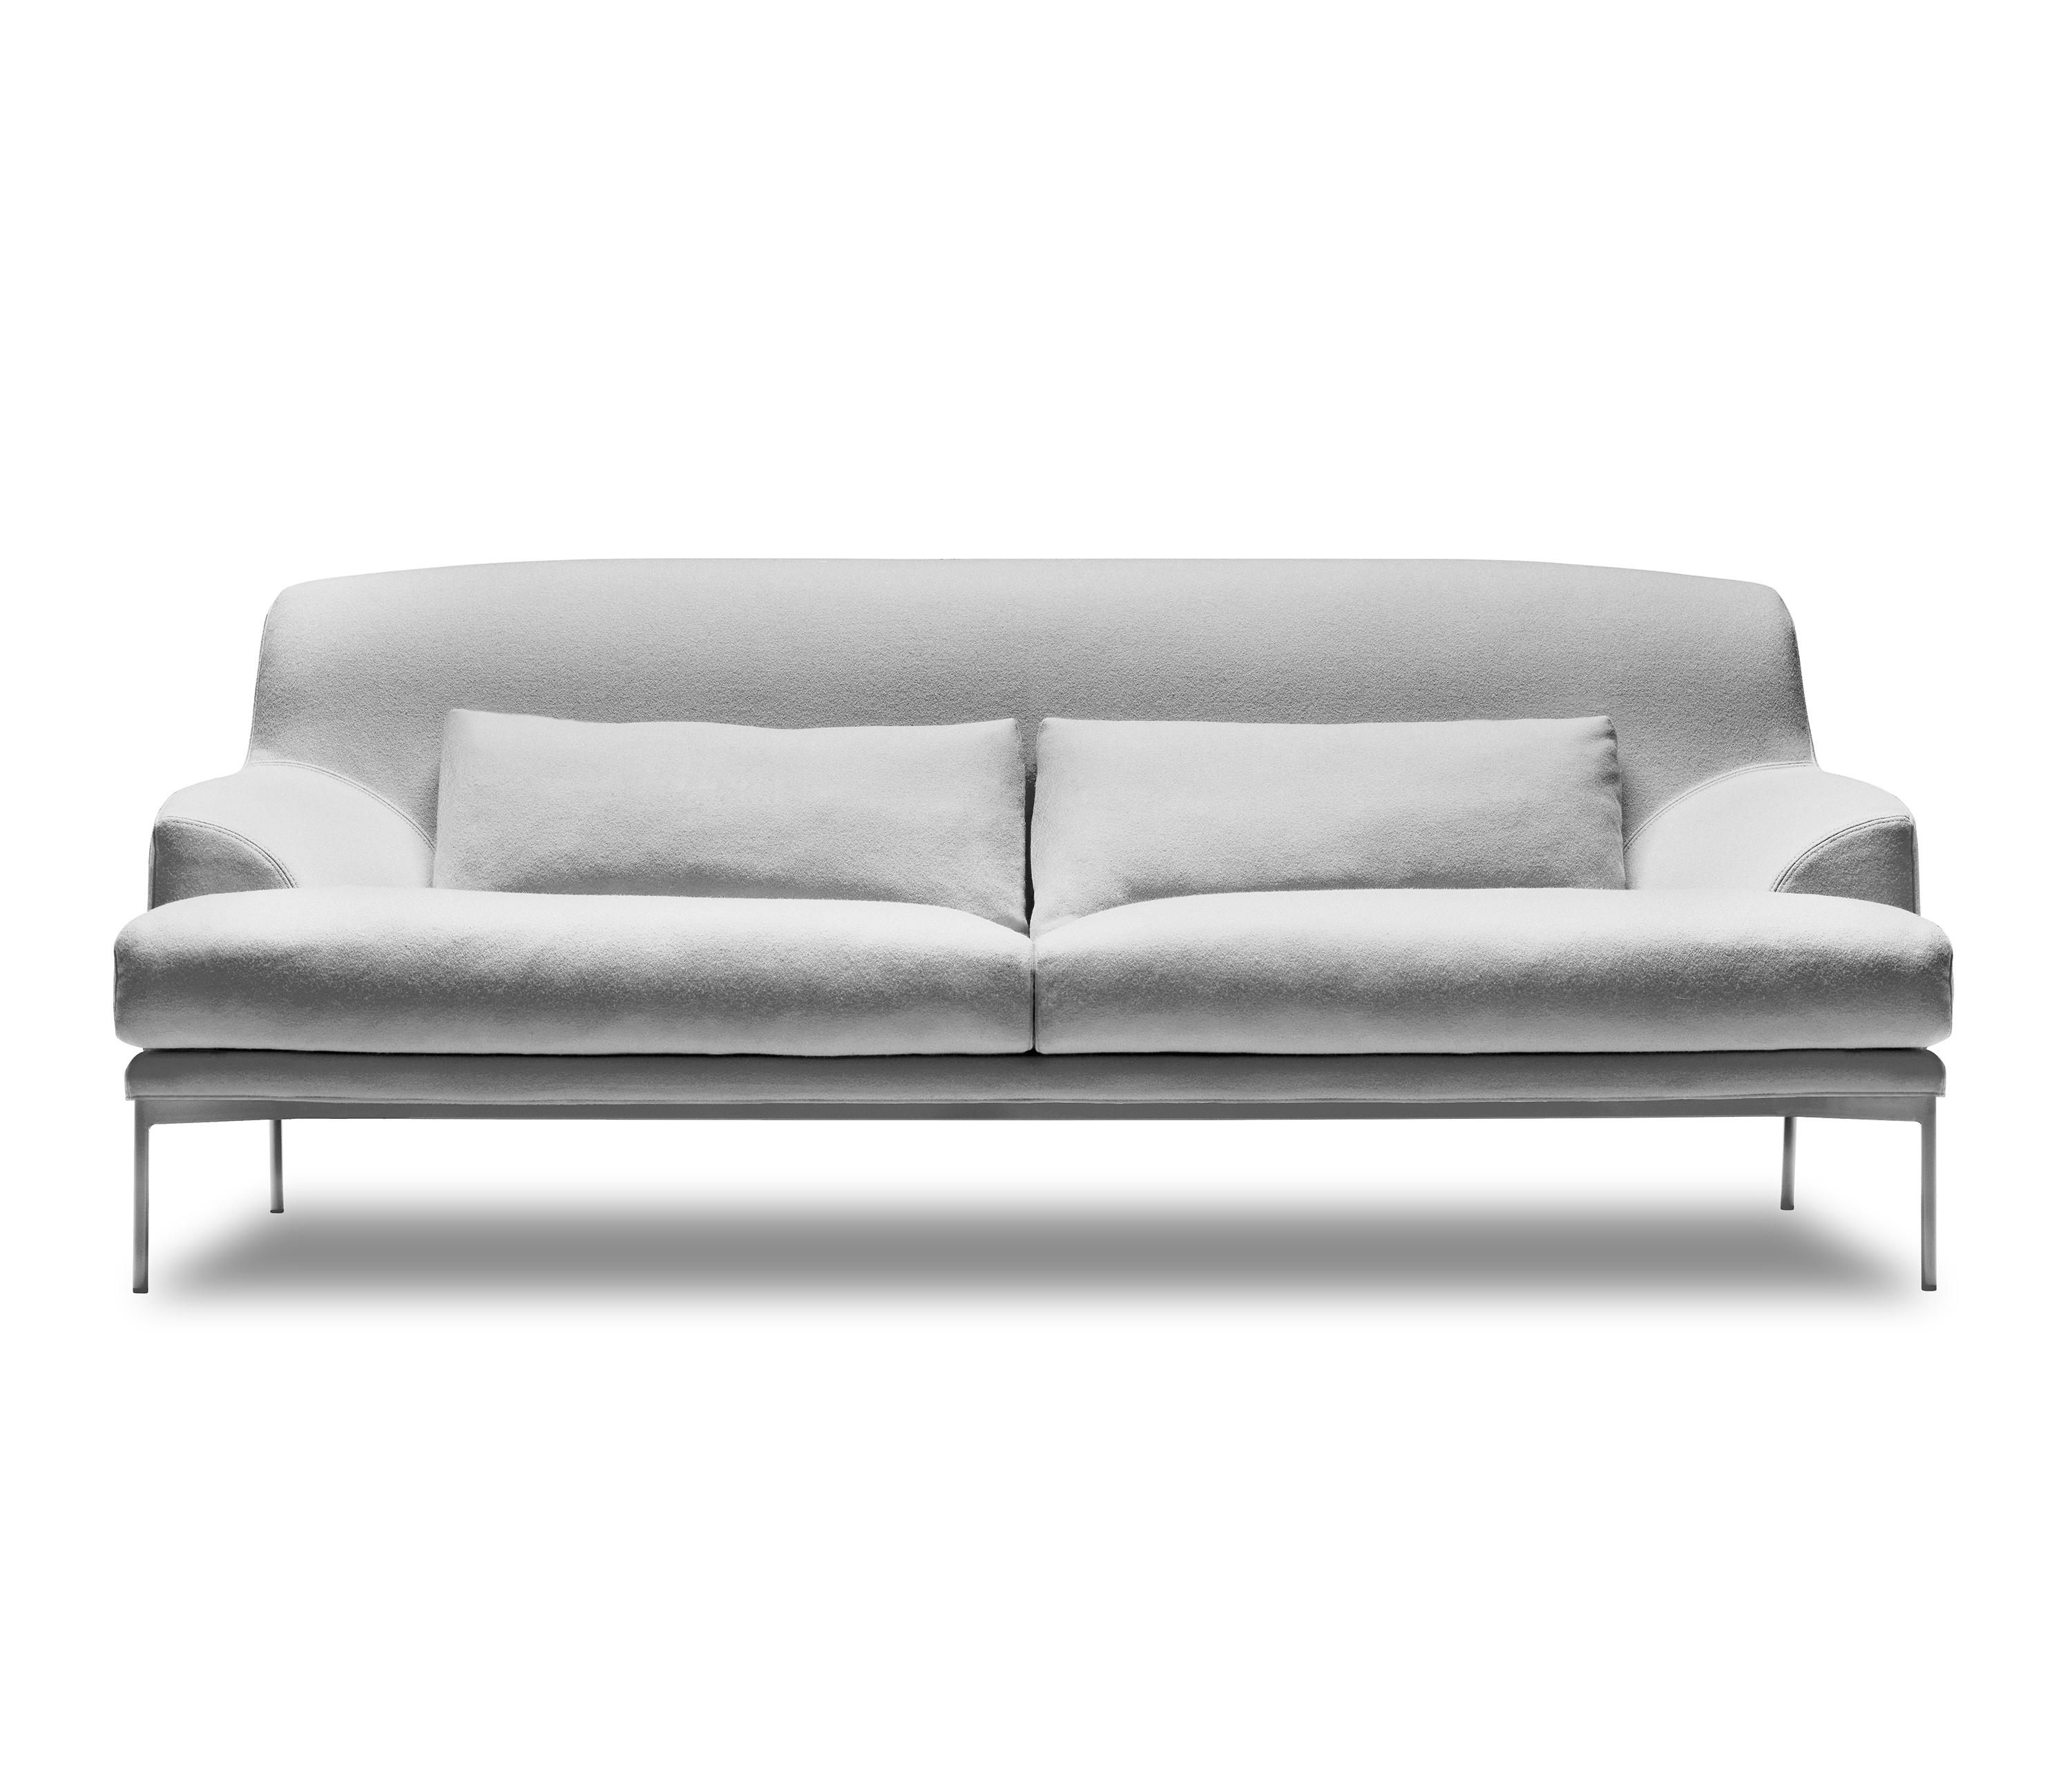 montevideo lounge sofas from tacchini italia architonic